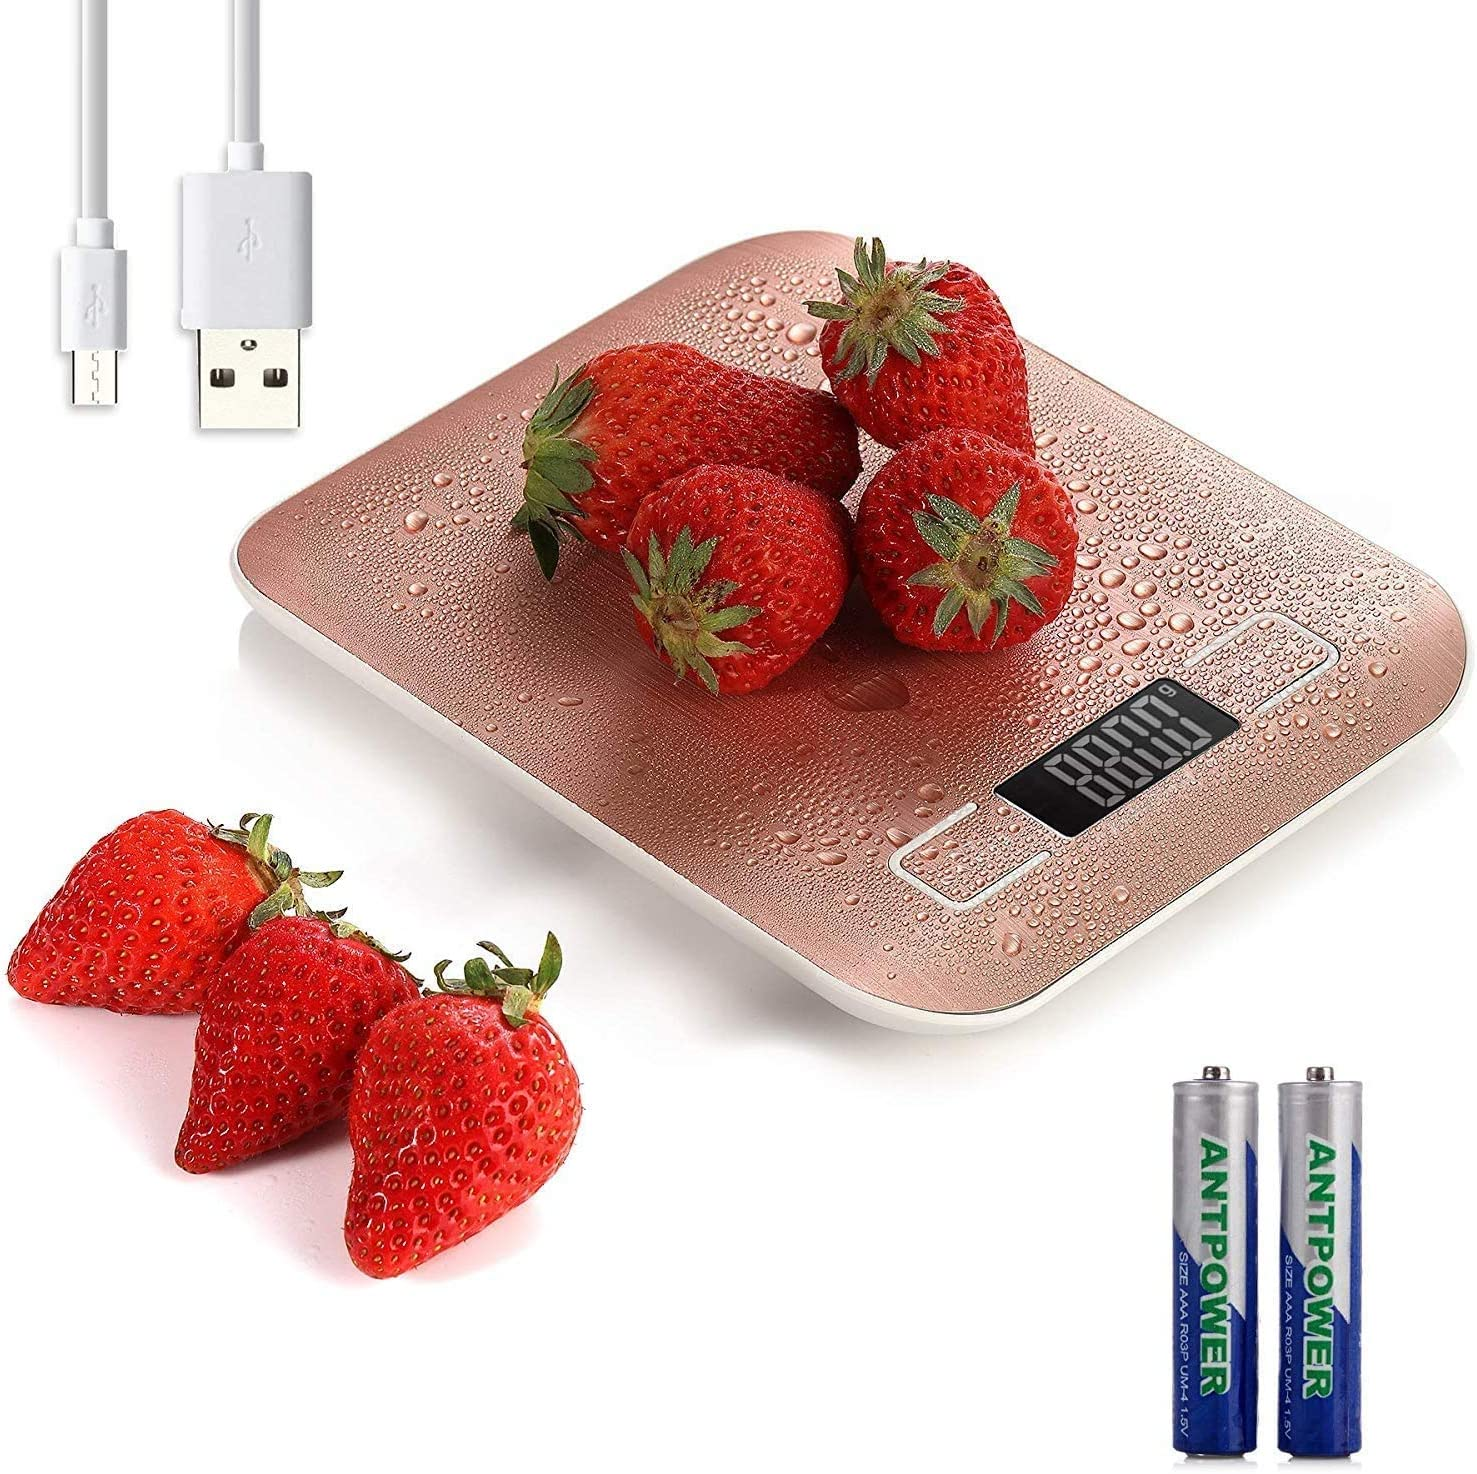 5kg/11lb Digital Kitchen Food Scale USB Rechargeable Stainless Steel Ultra Slim Food Scale High Precision with 0.04oz/1g Division Tare & Auto Off Function LCD Display (Rose Gold)